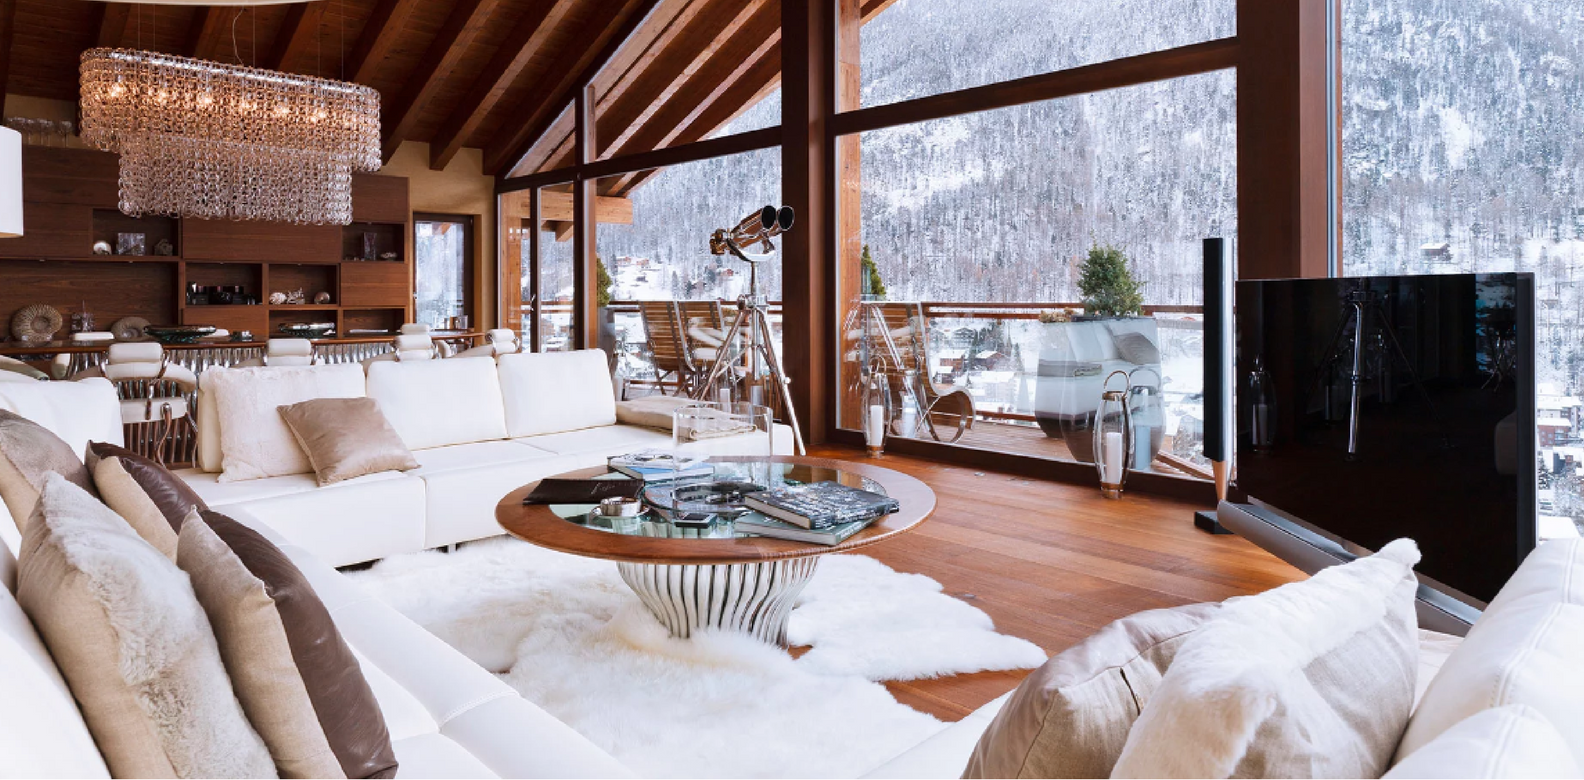 7 Luxury Ski Chalets In Europe To Elevate Your Next Vacation